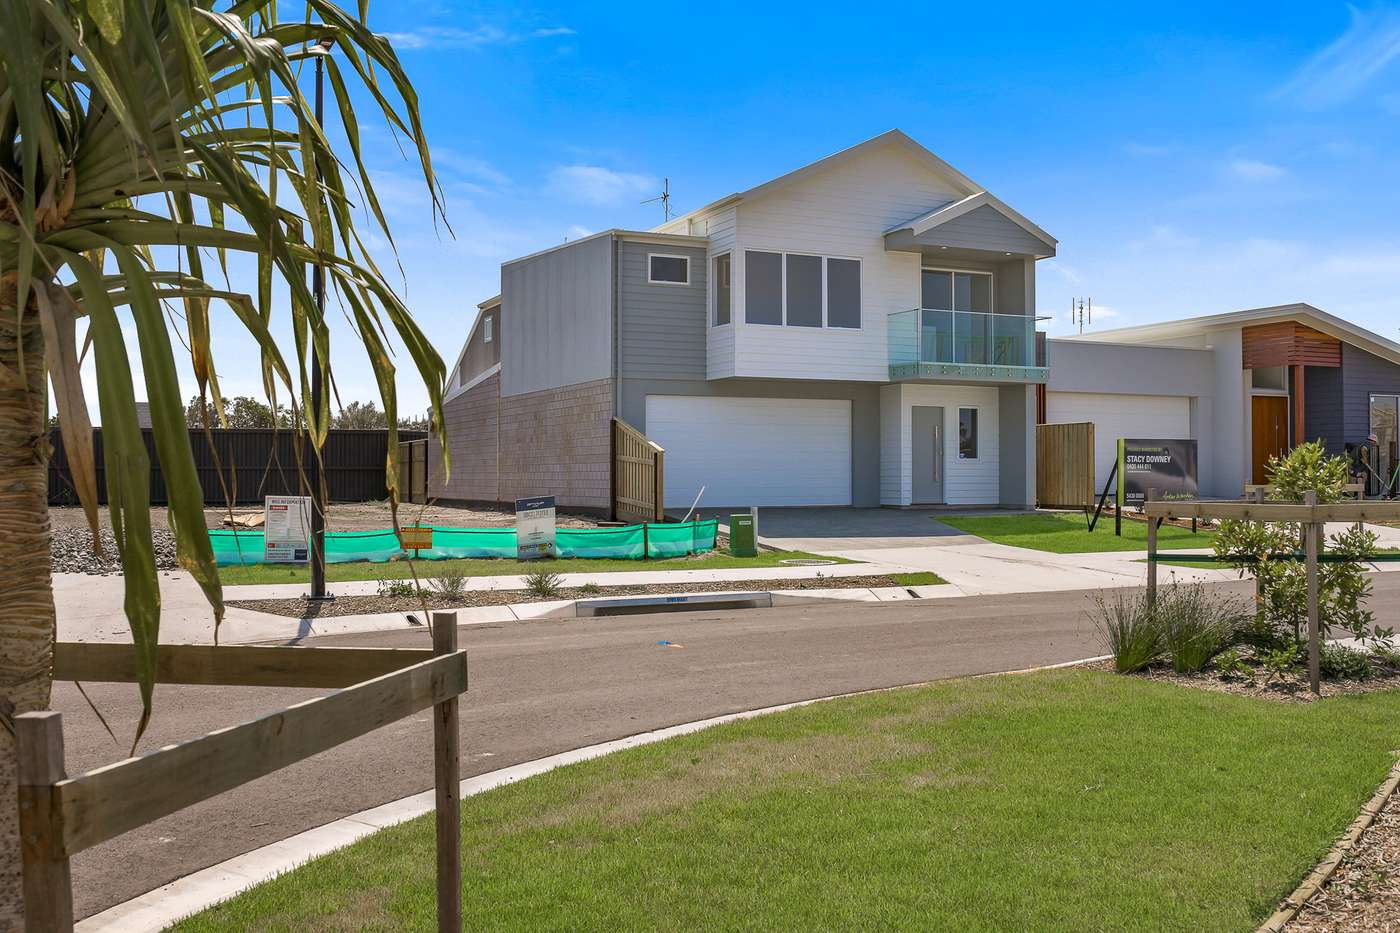 Main view of Homely house listing, 52 Switchfoot Street, Bokarina, QLD 4575